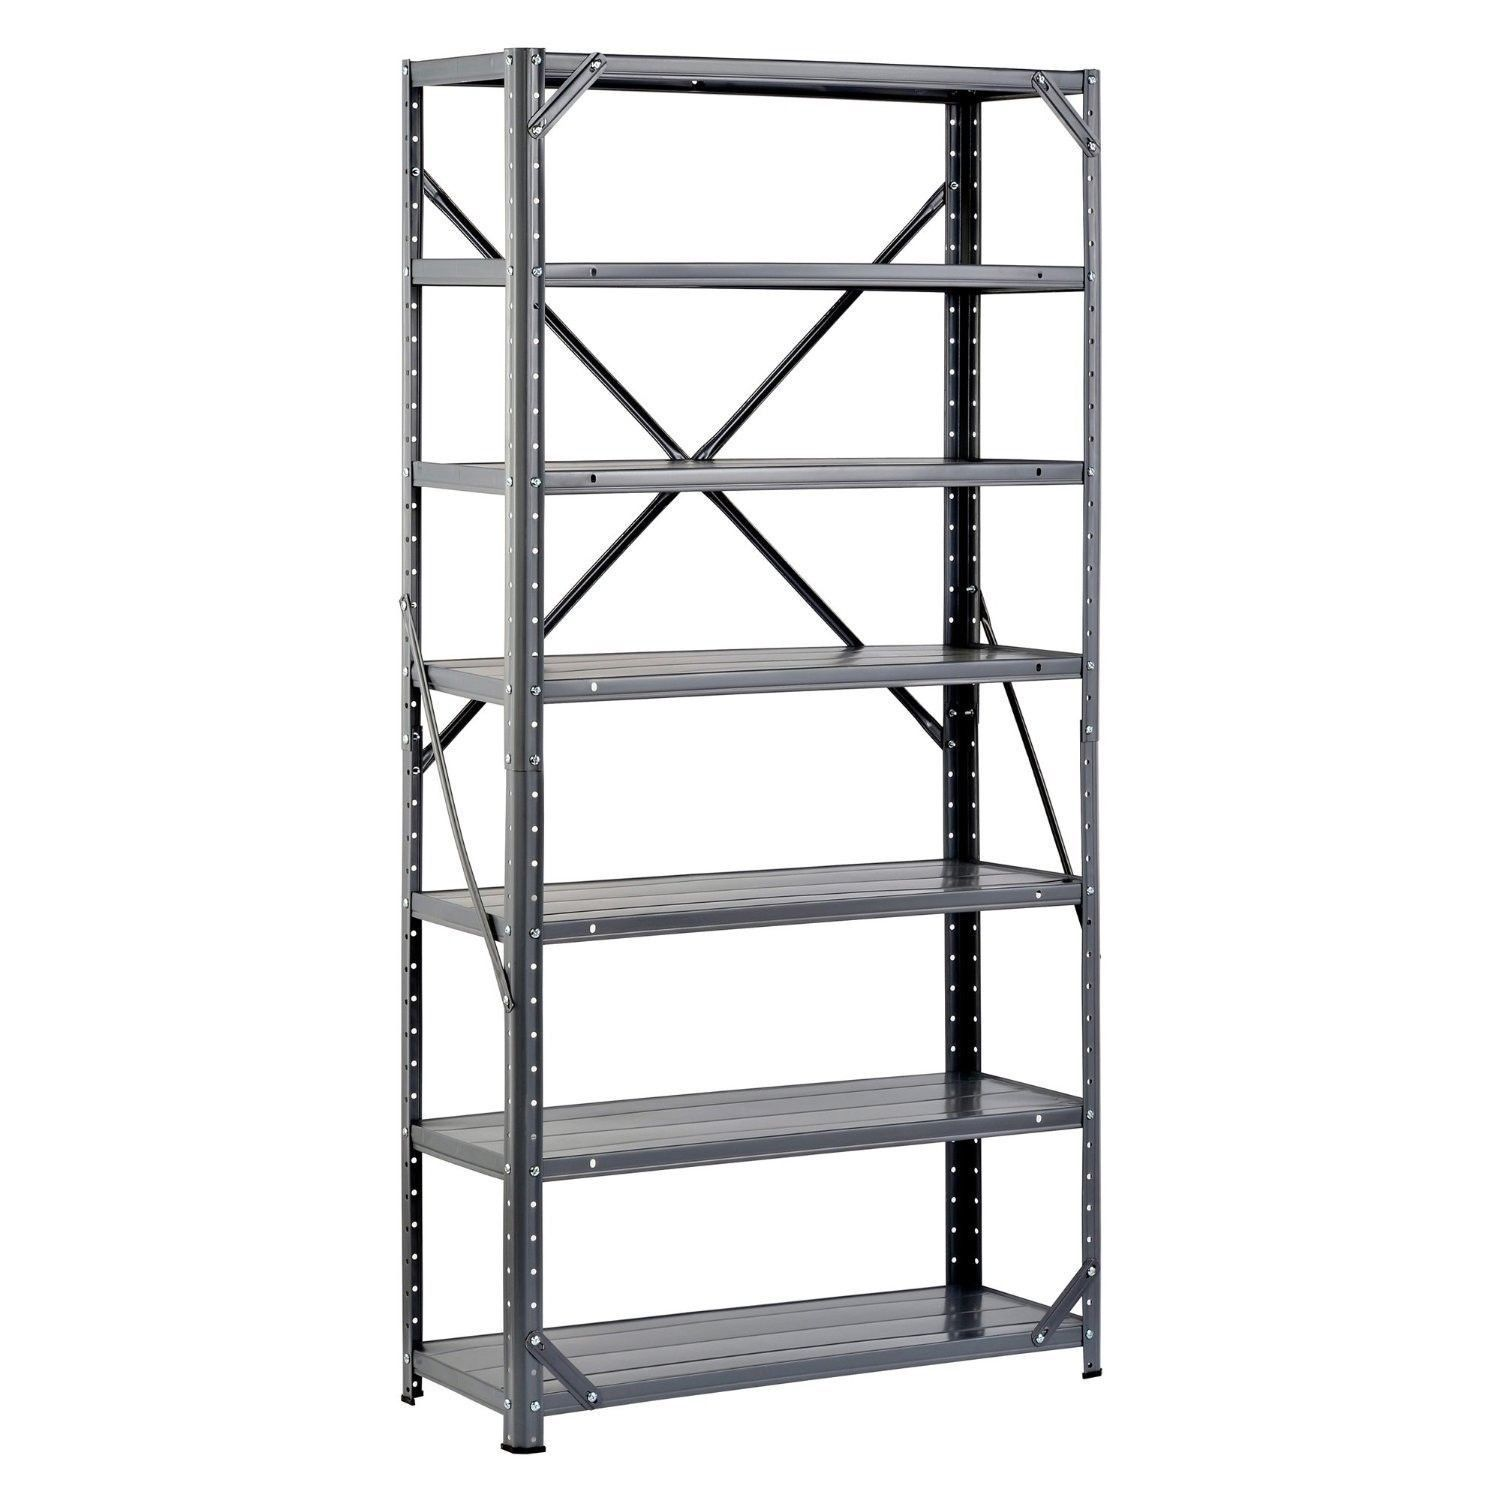 75 rack Shelves heavy duty #rack #Shelves #heavy #duty Please Click Link To Find More Reference,,, ENJOY!!